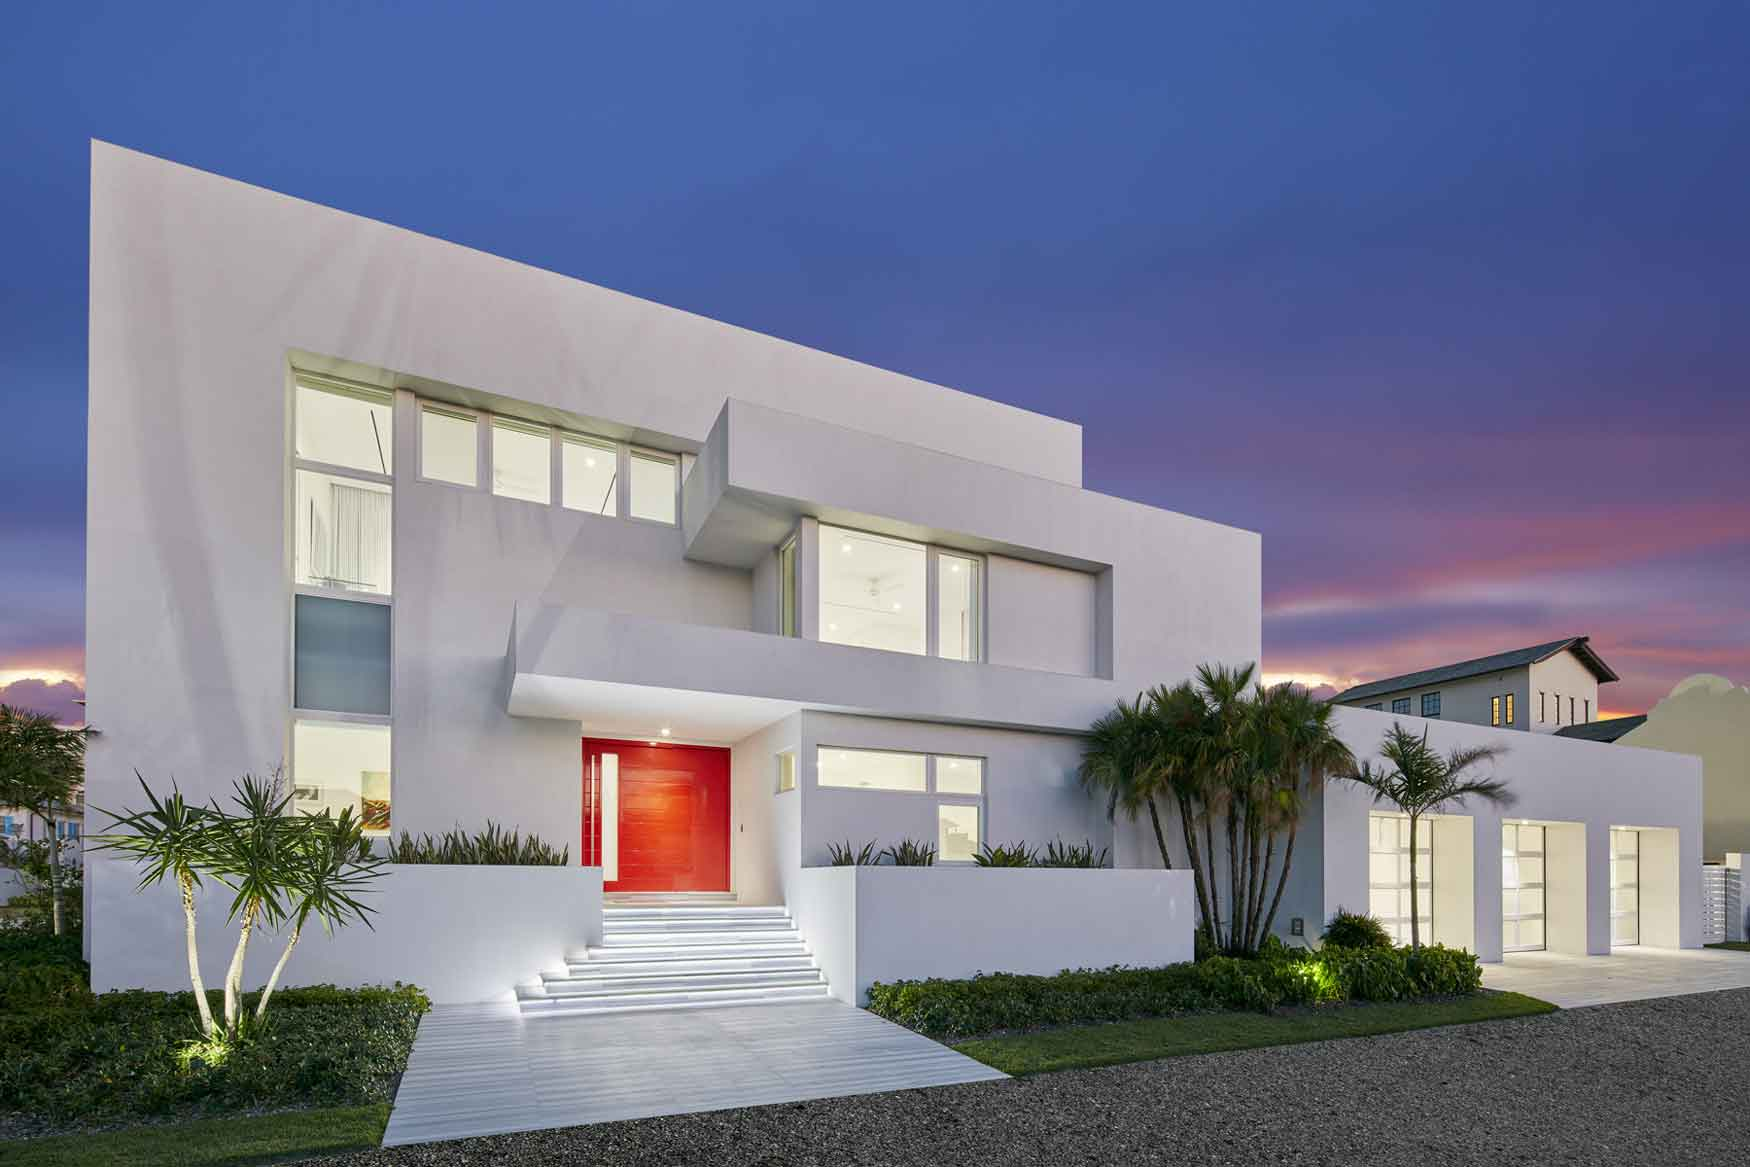 This contemporary villa is situated in Albany, Bahamas, one of the most desirable residential resorts in the world.